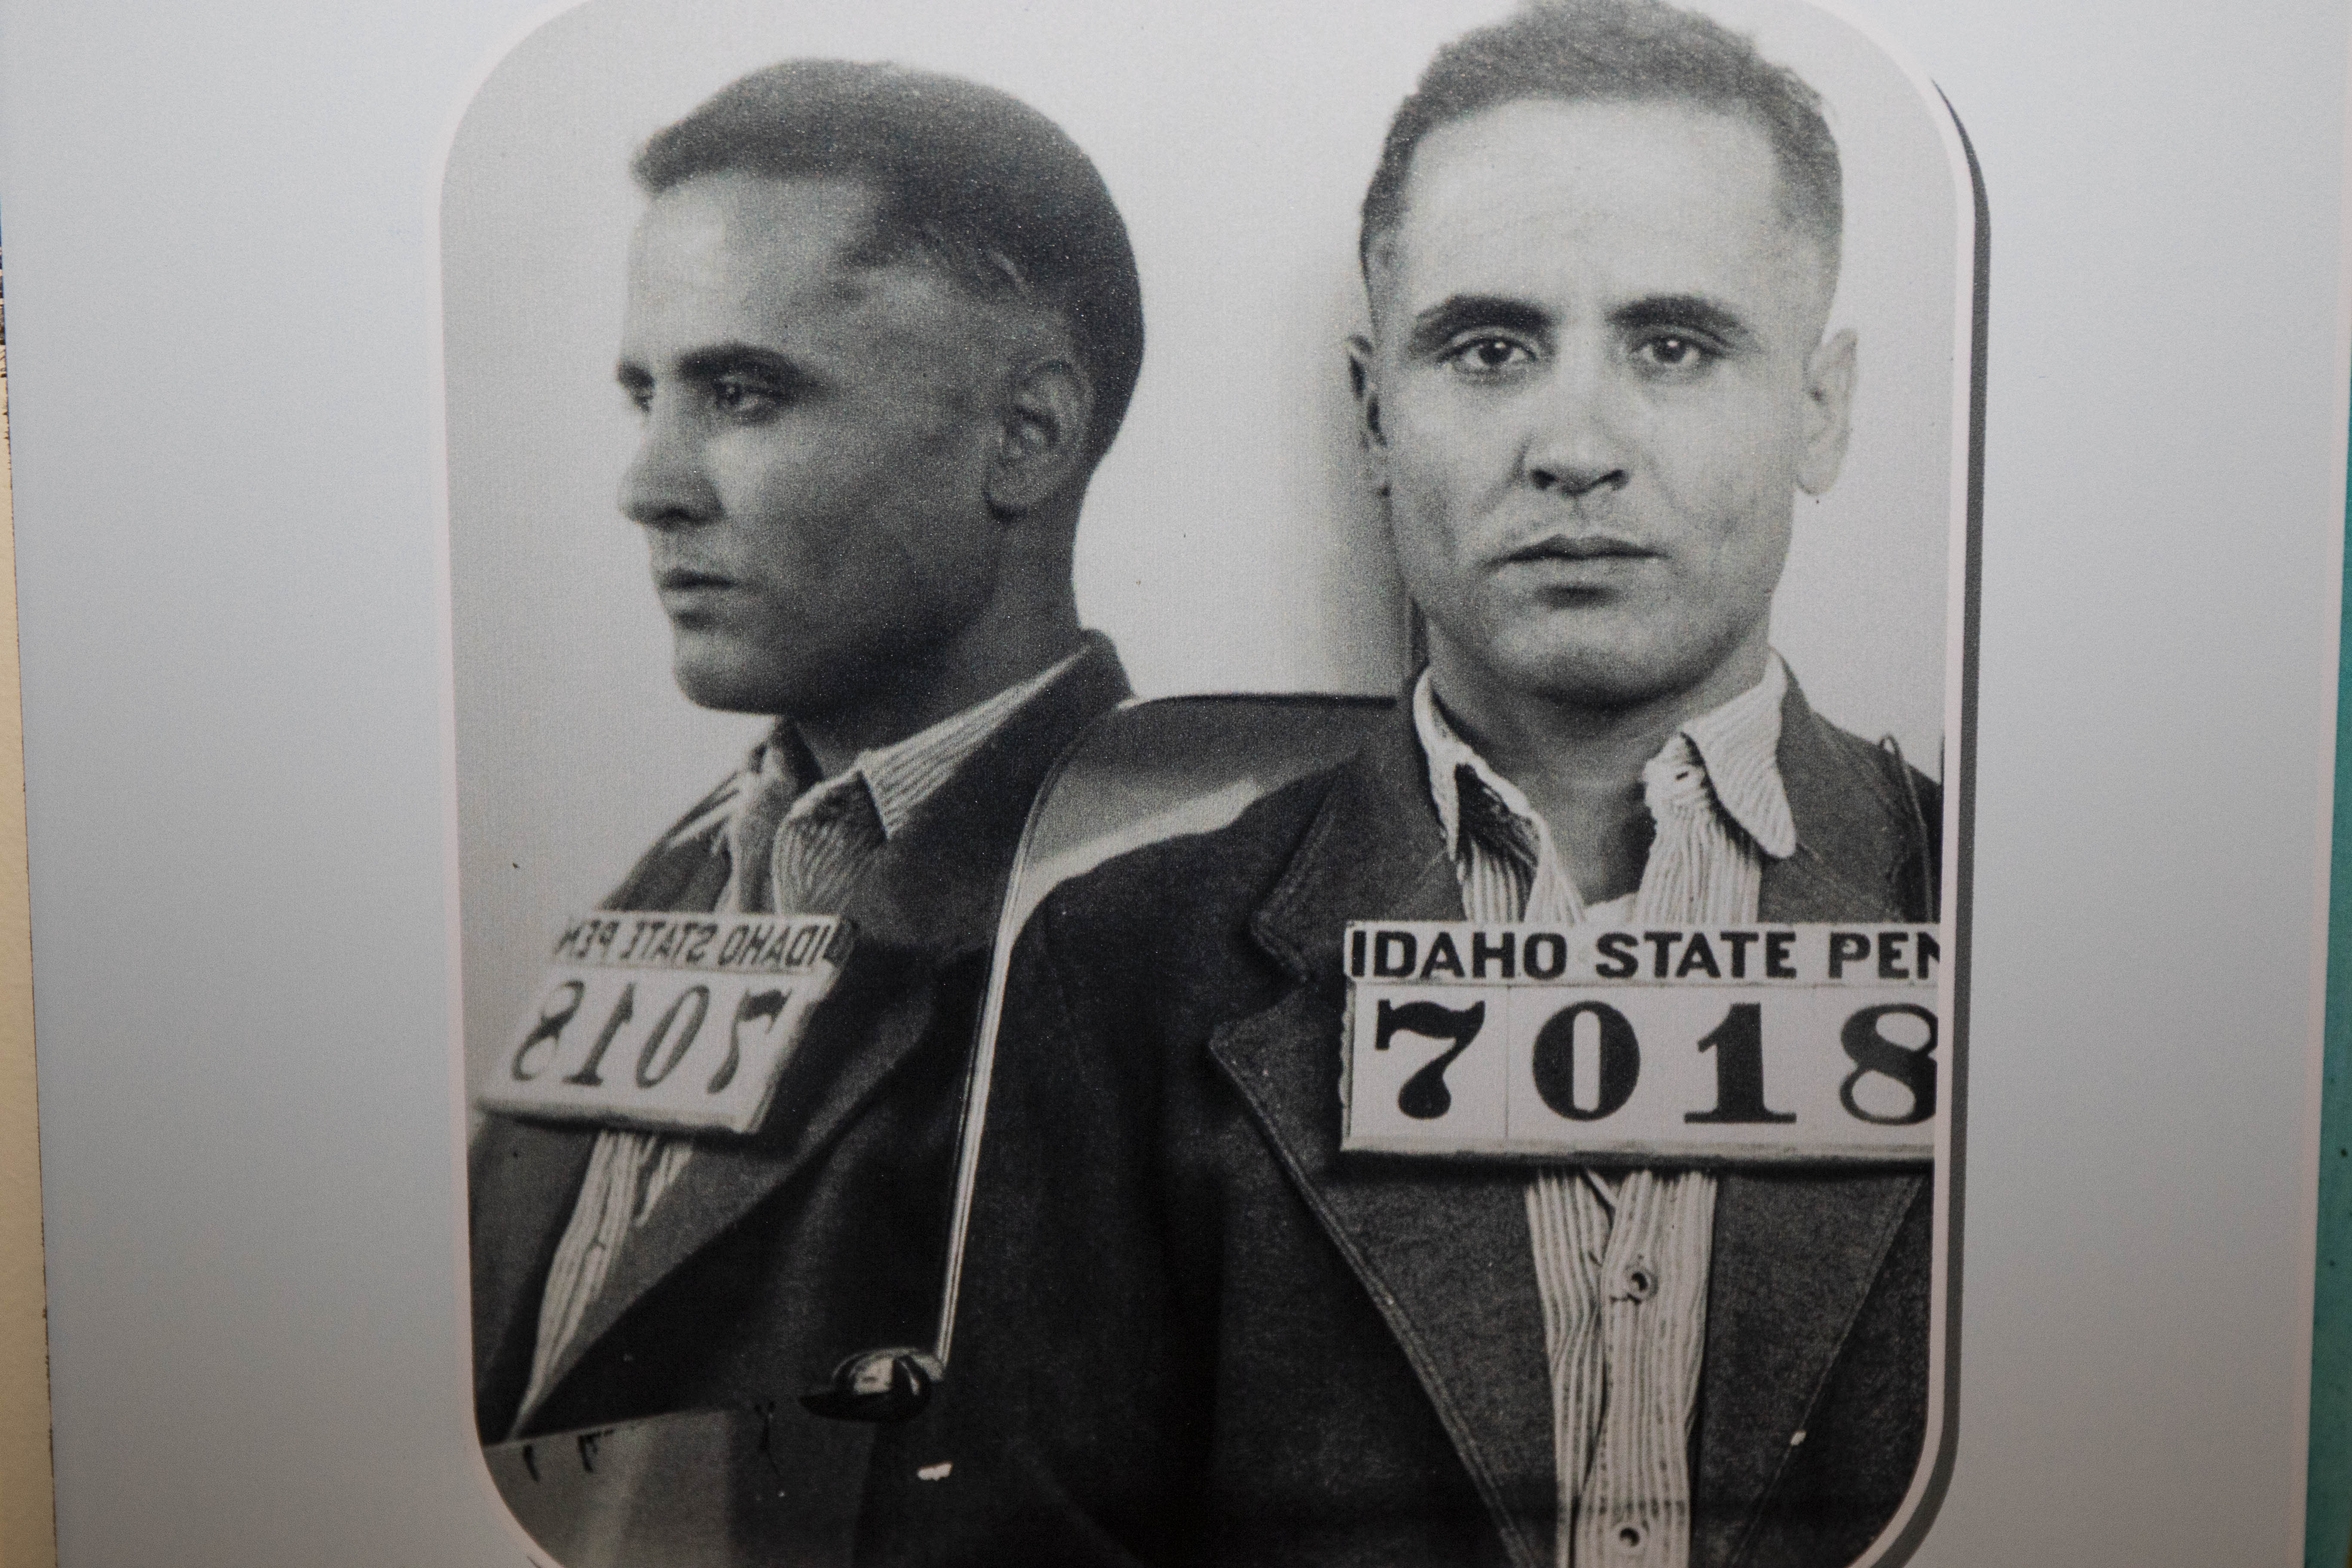 The Old Idaho Penitentiary is opening a new exhibit Saturday, Jan. 12. It features untold stories from people of diverse backgrounds. Highlighting the background and history of Idaho's old inmate populations.{ }